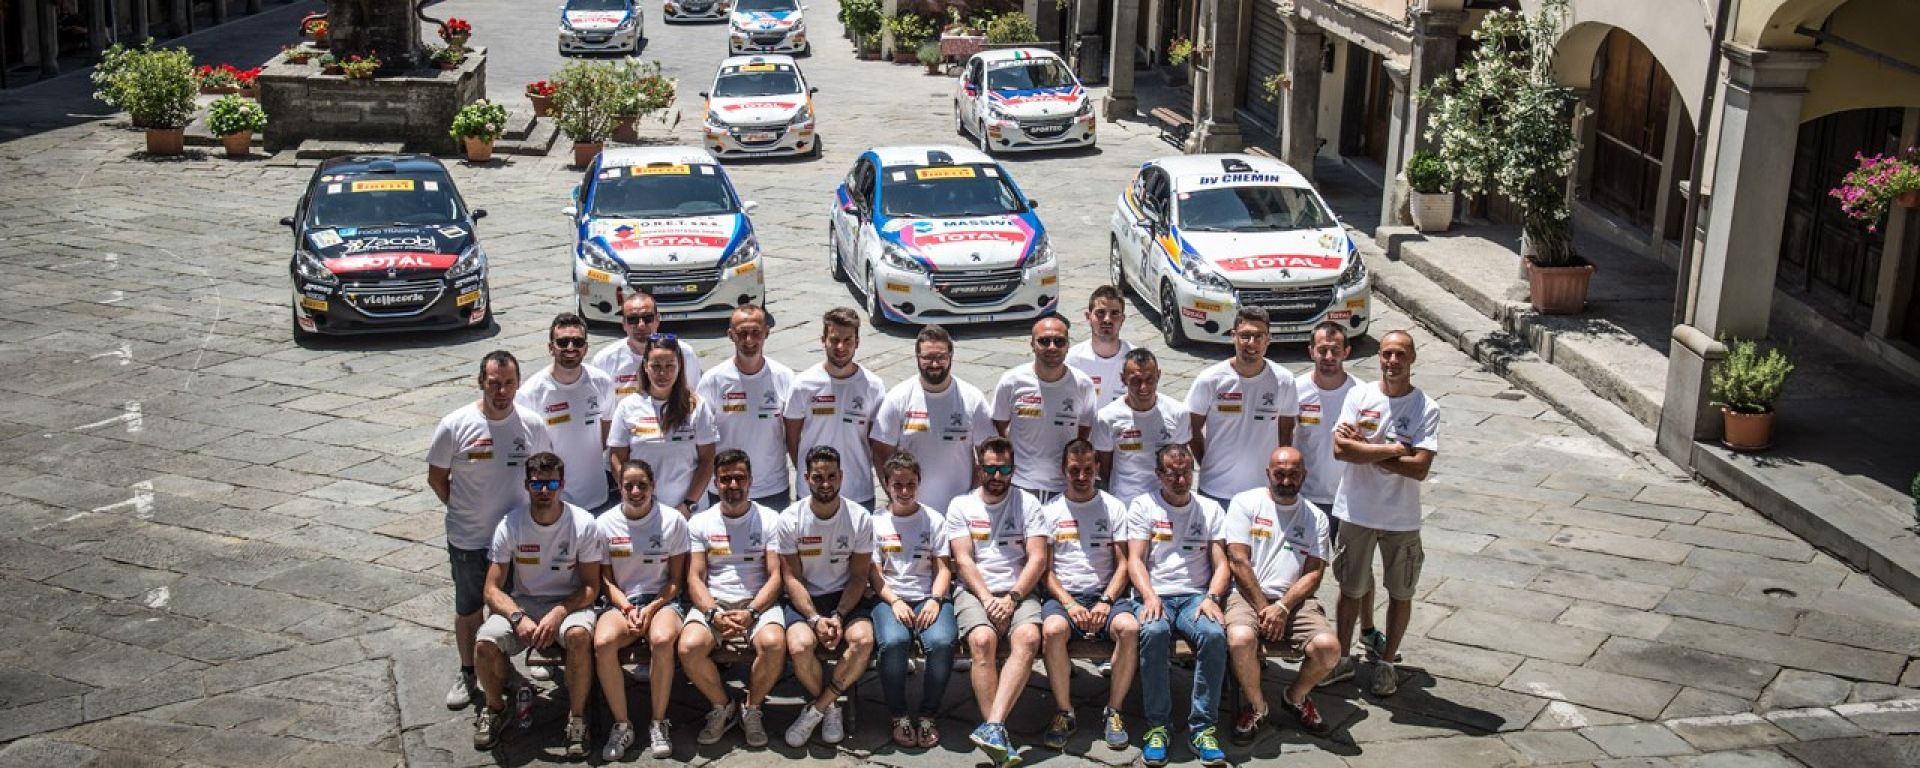 Peugeot Top Competition 208 Rally